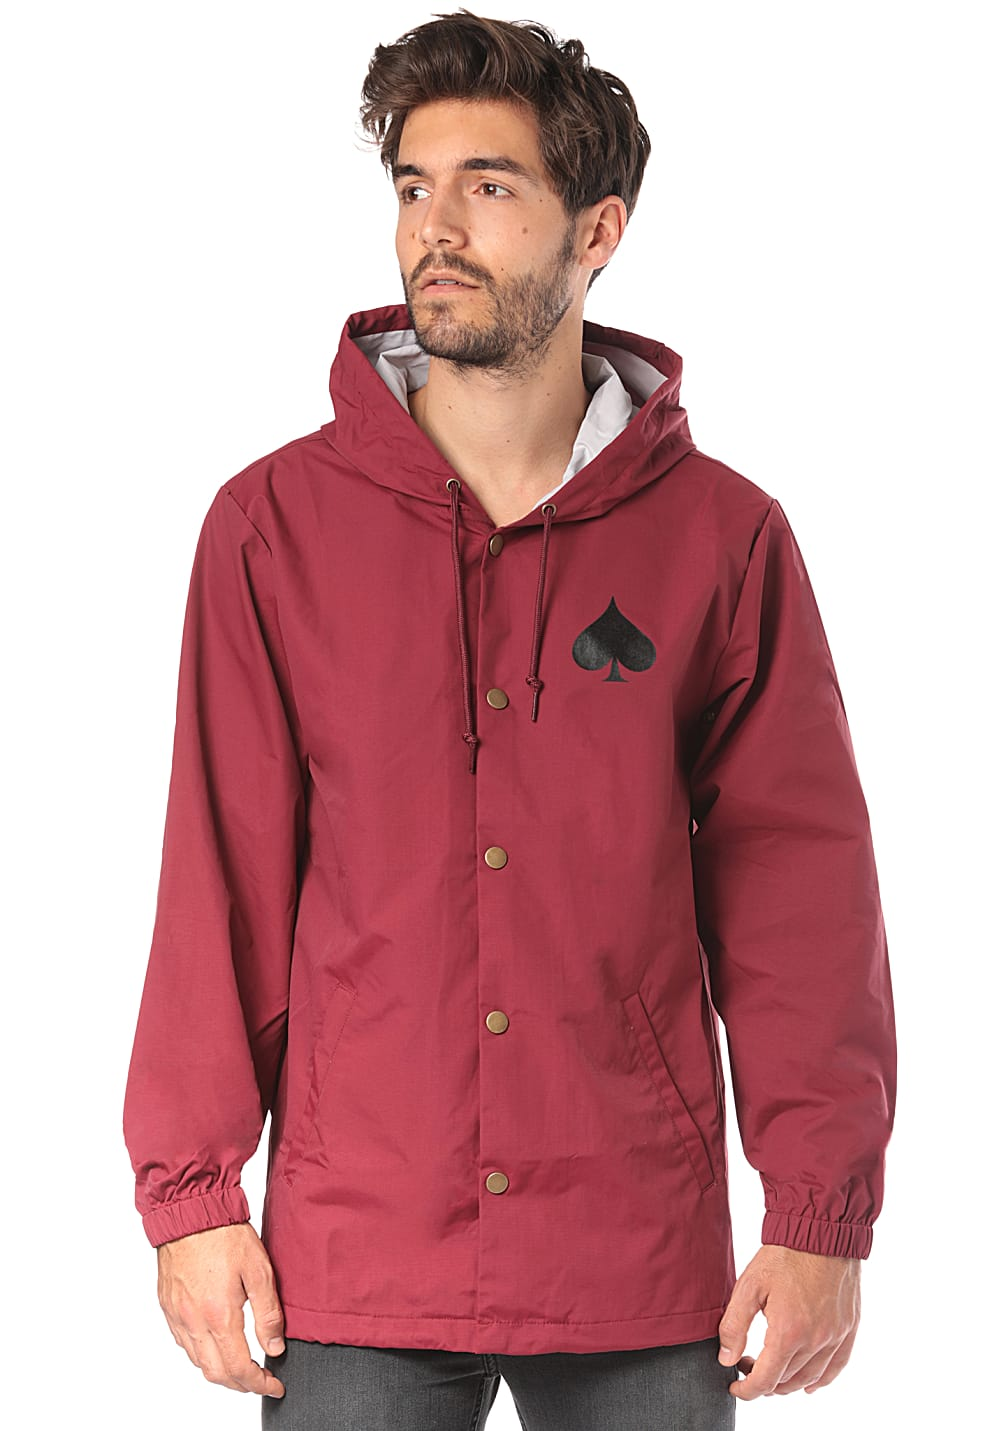 b0d20a9f2ec4 THRASHER New Oath Coach - Jacket for Men - Red - Planet Sports